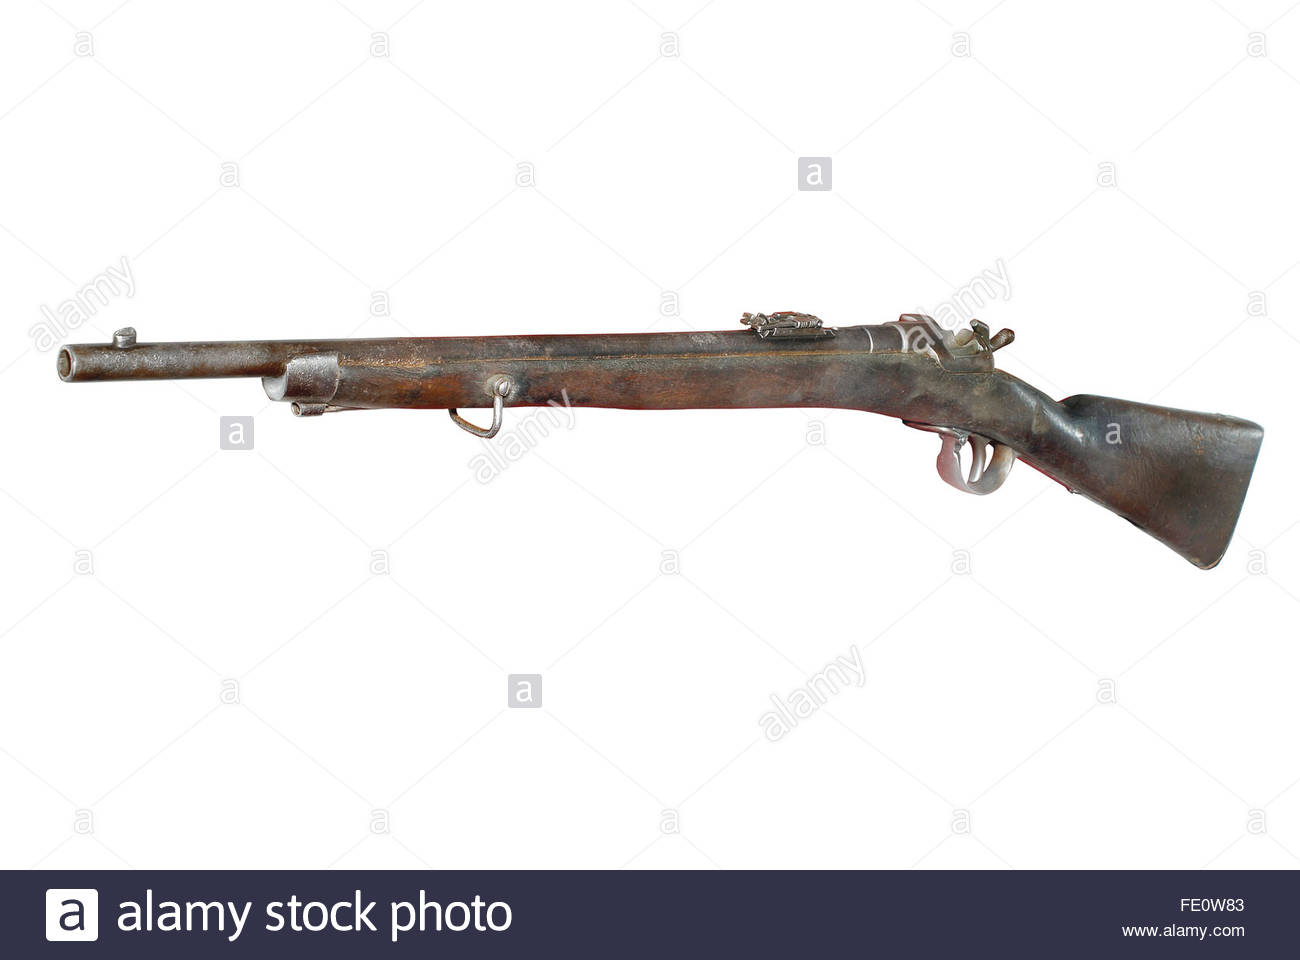 19th century Austrian cavalry short rifle (model of 1873-1878), Werndl system. - Stock Image